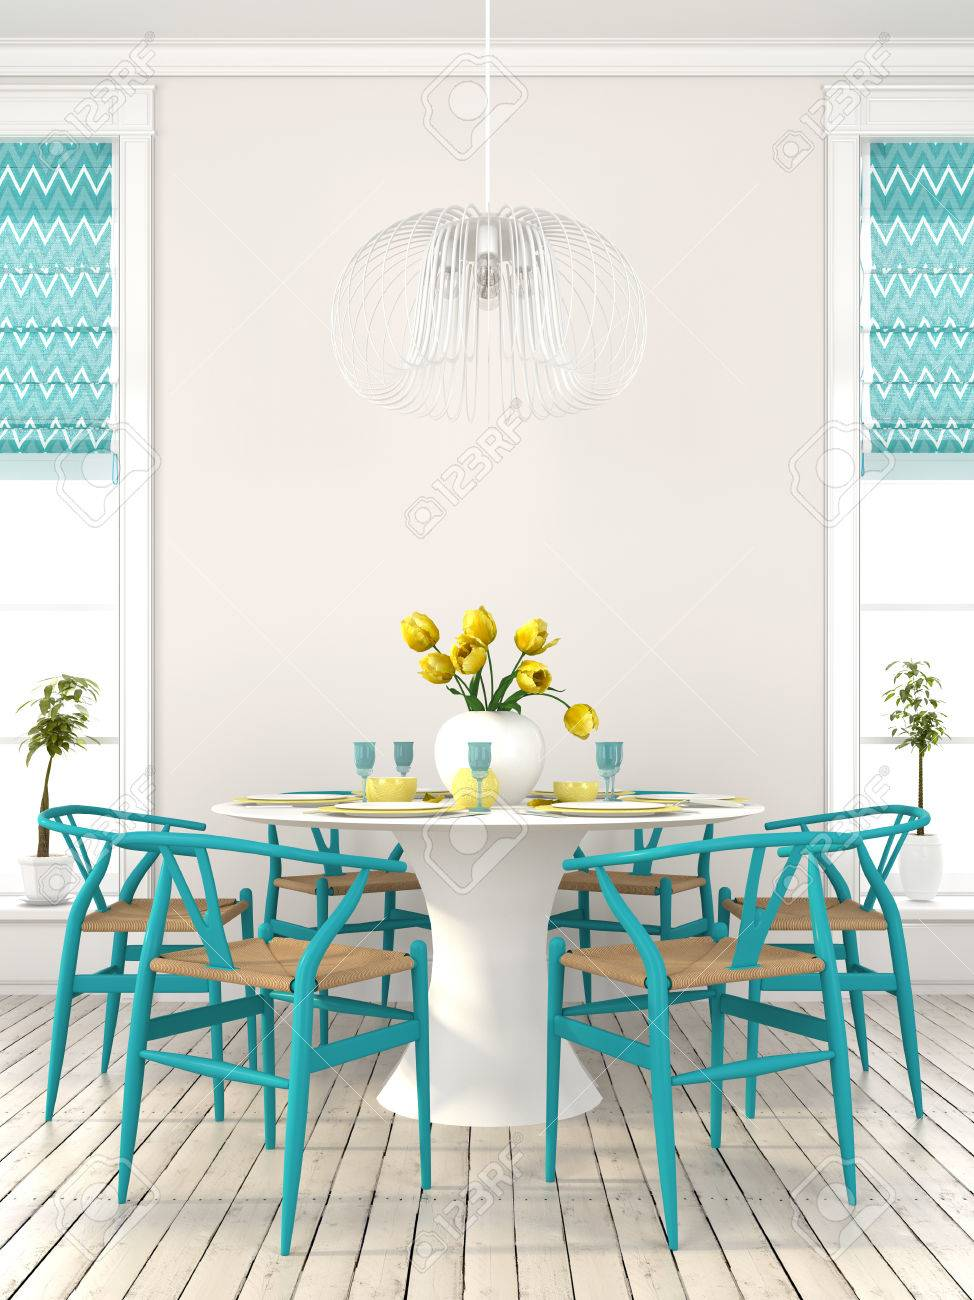 The Bright Dining Room With Blue Furniture And Yellow Decor Stock Photo Picture And Royalty Free Image Image 40002993